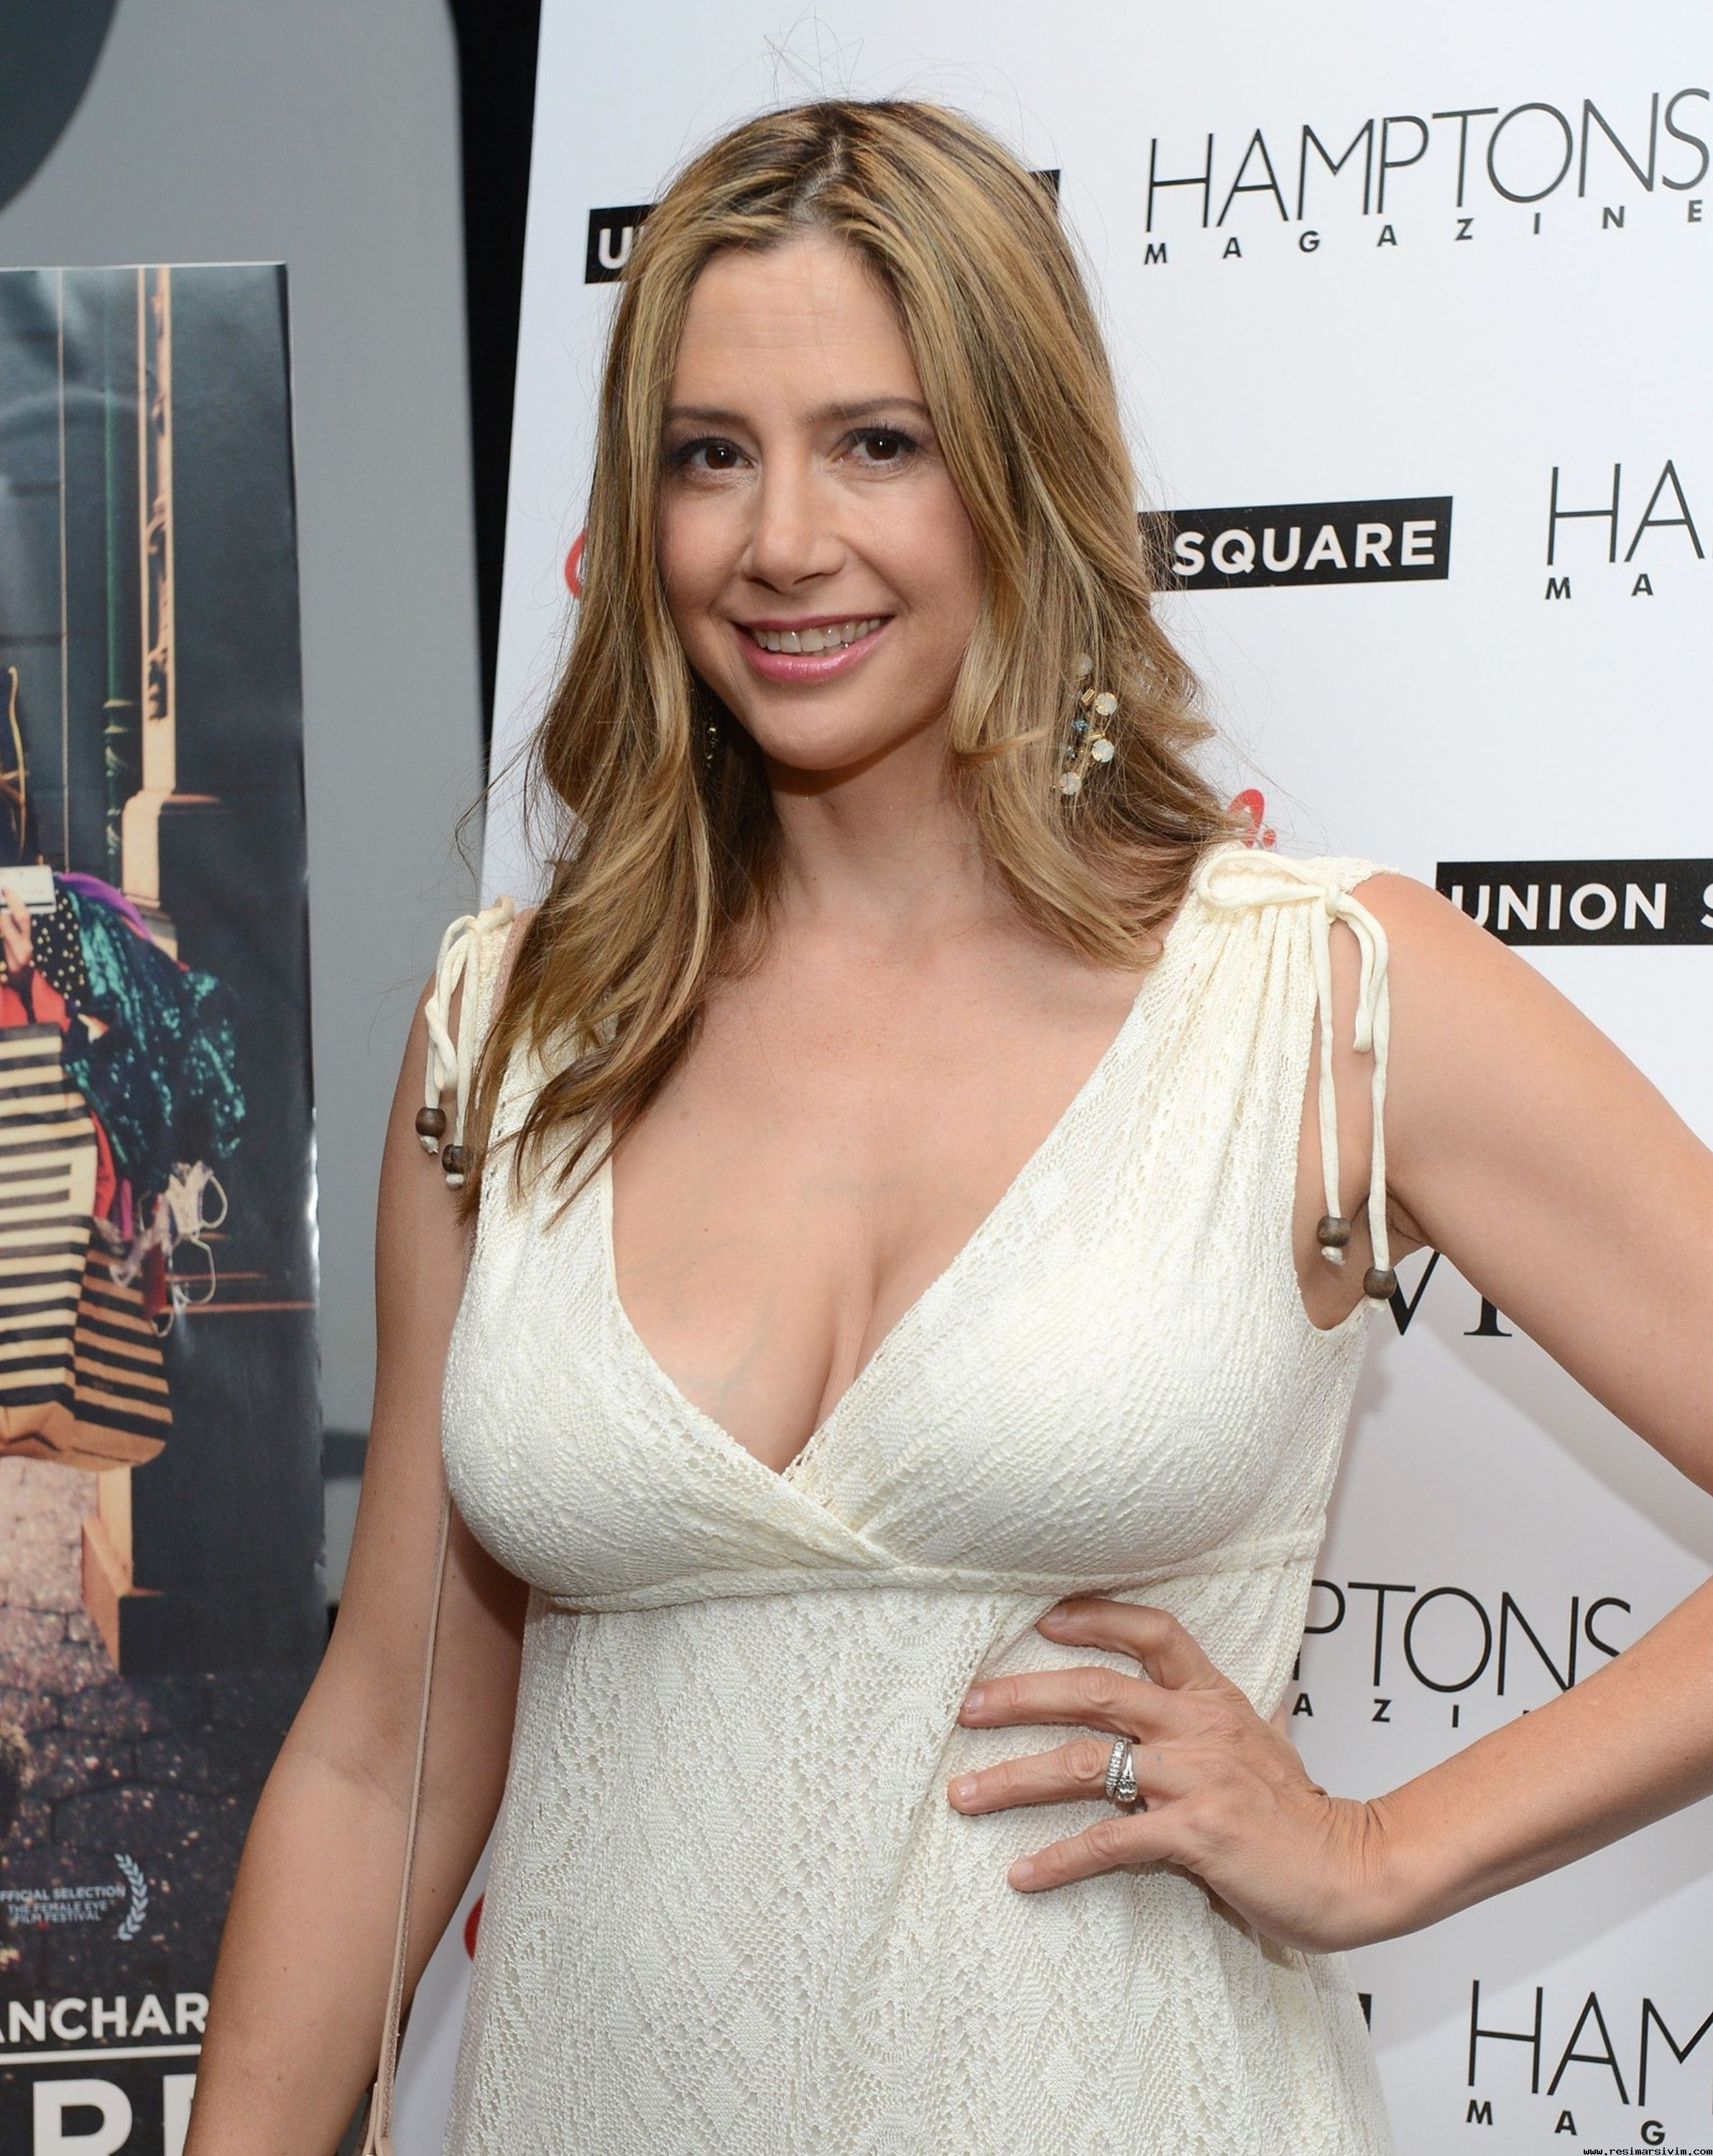 Mira sorvino hot